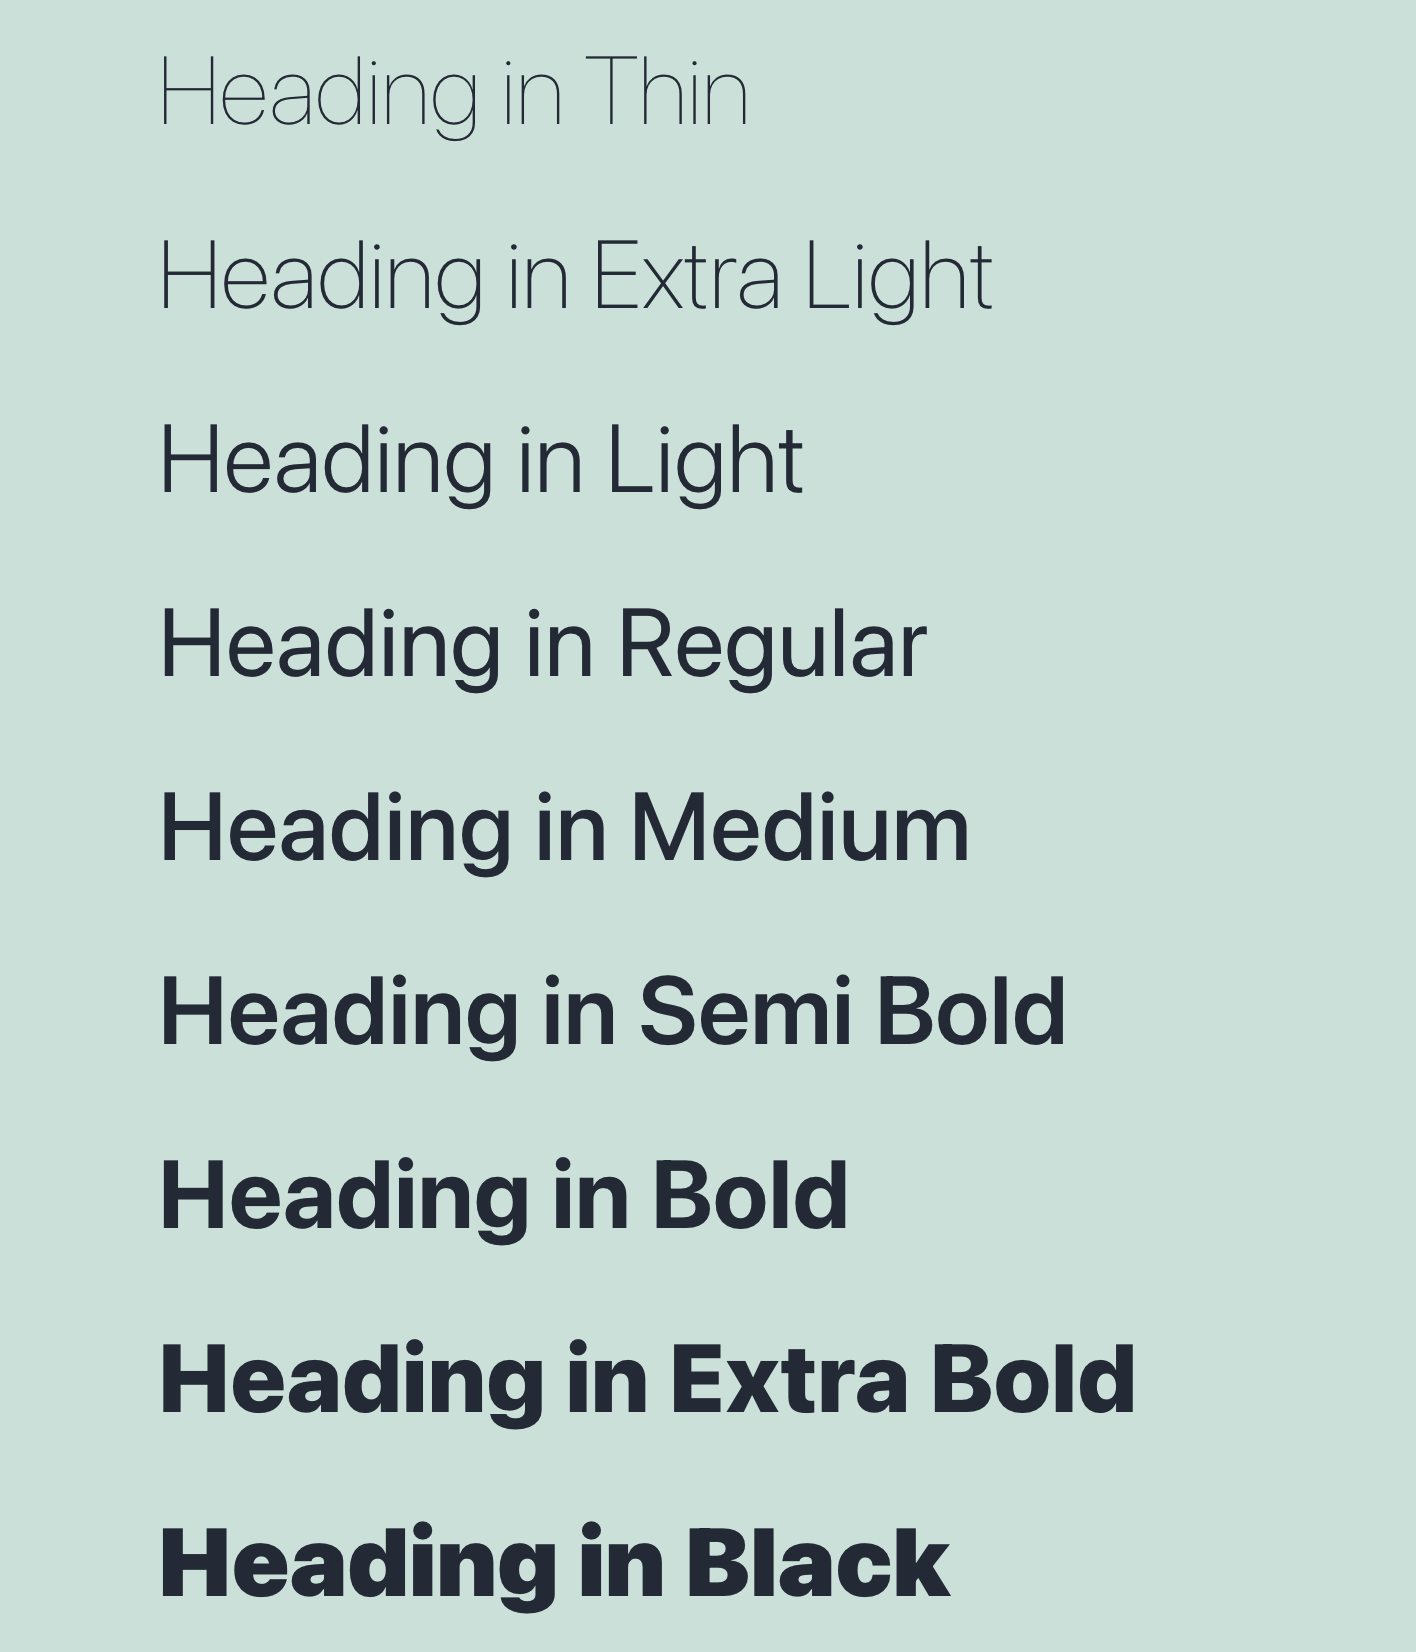 2021-07-21-gutenberg-headings-weights Heading Font Weights and List View Toggles Arrive in Block Editor and WordPress 5.8 WordPress